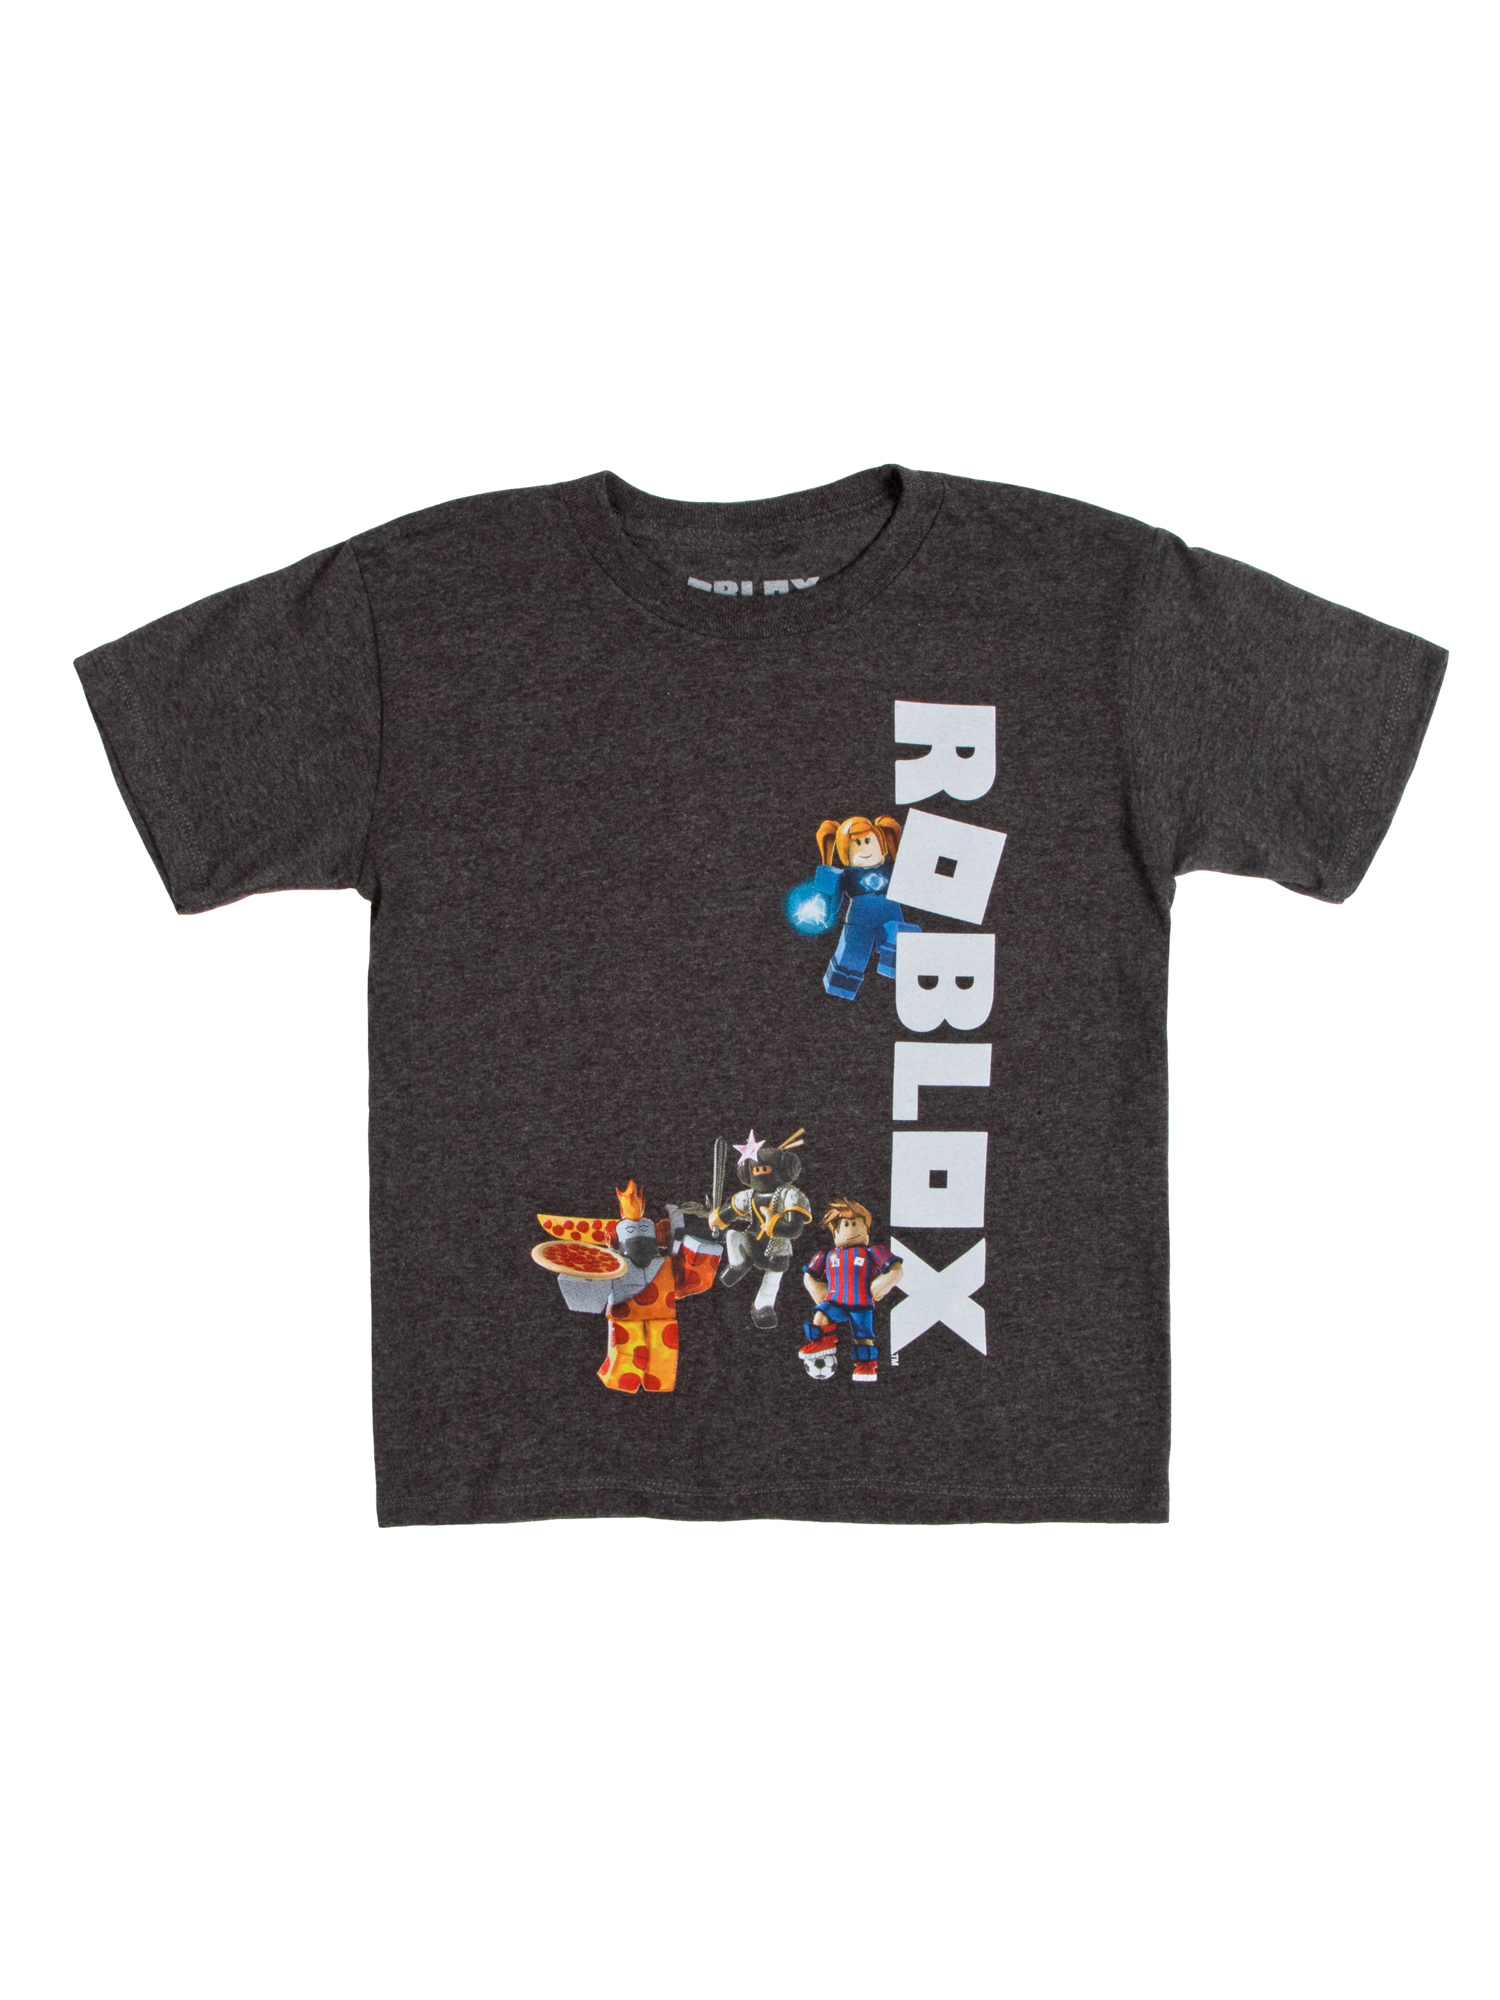 Roblox Roblox Boys Graphic Short Sleeve T Shirt Sizes 4 18